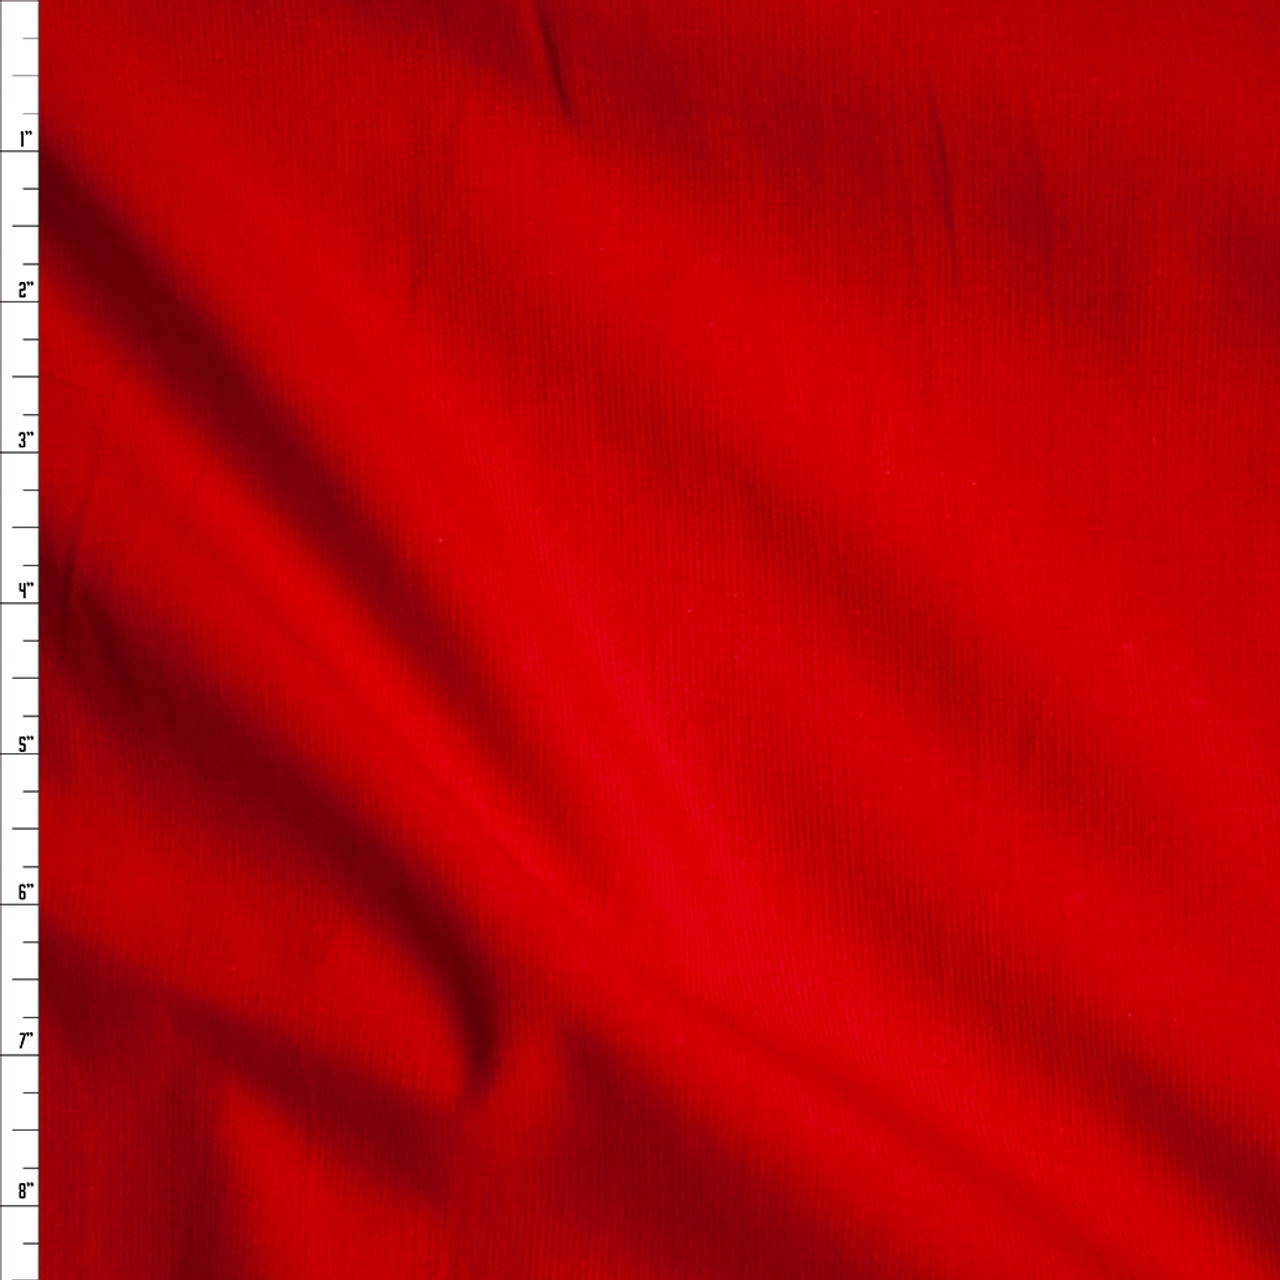 velvet by the 12 meter. Tomato red corduroy fabric in organic cotton Bright red baby cord